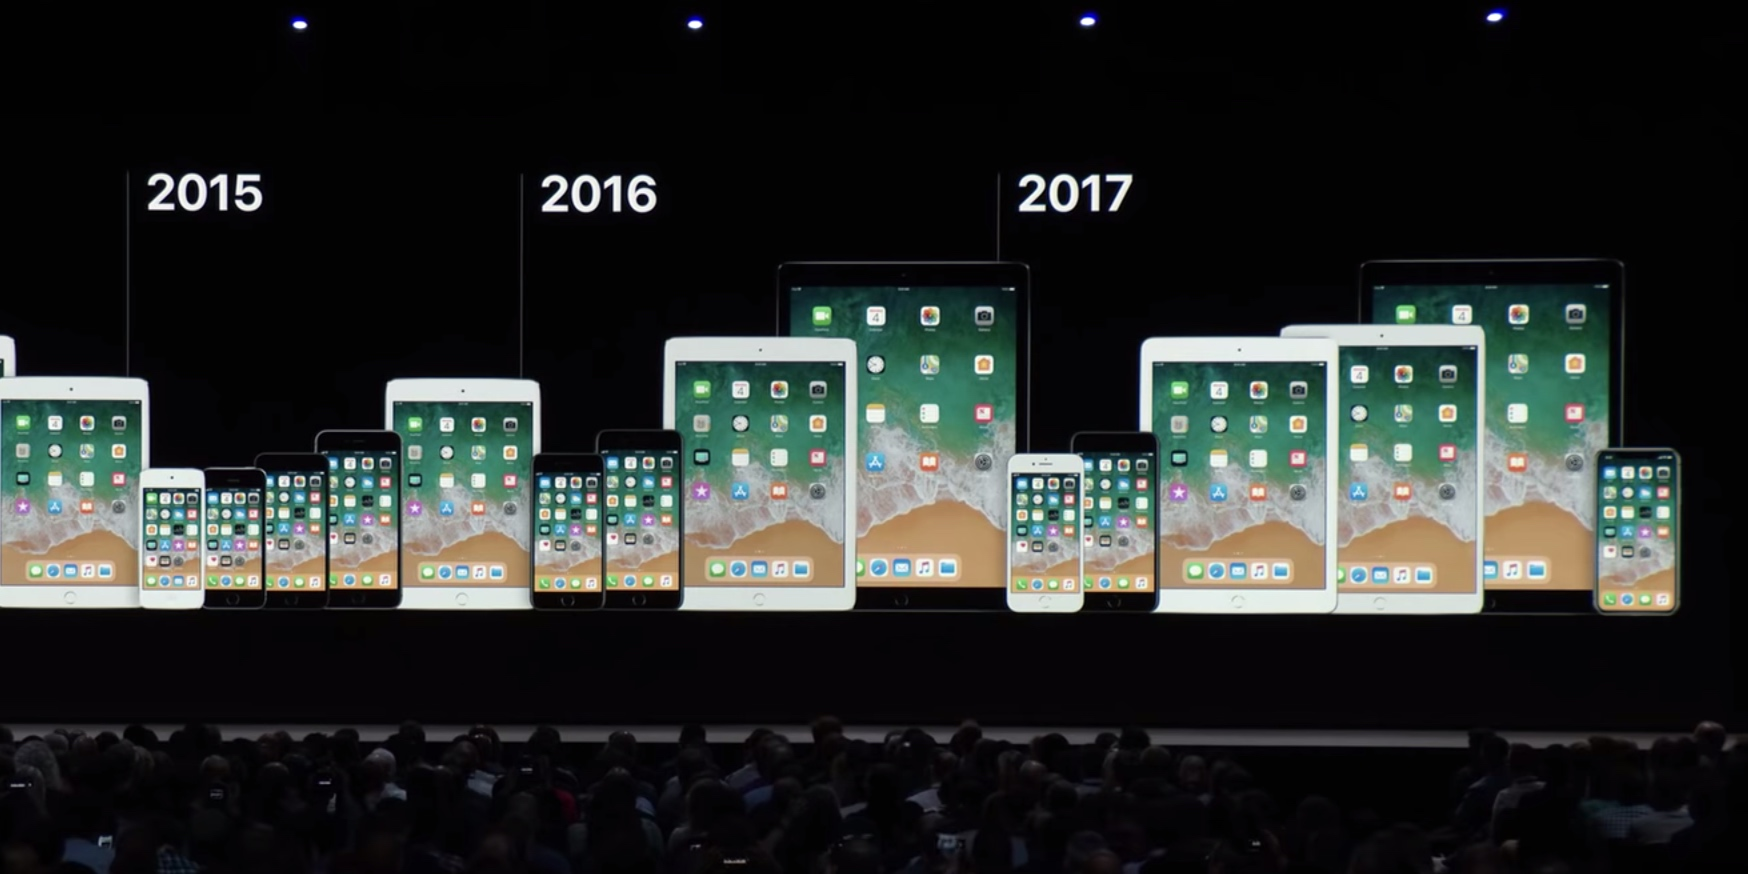 Rumor suggests iOS 13 will not support iPhone 6, iPhone SE and iPhone 5s